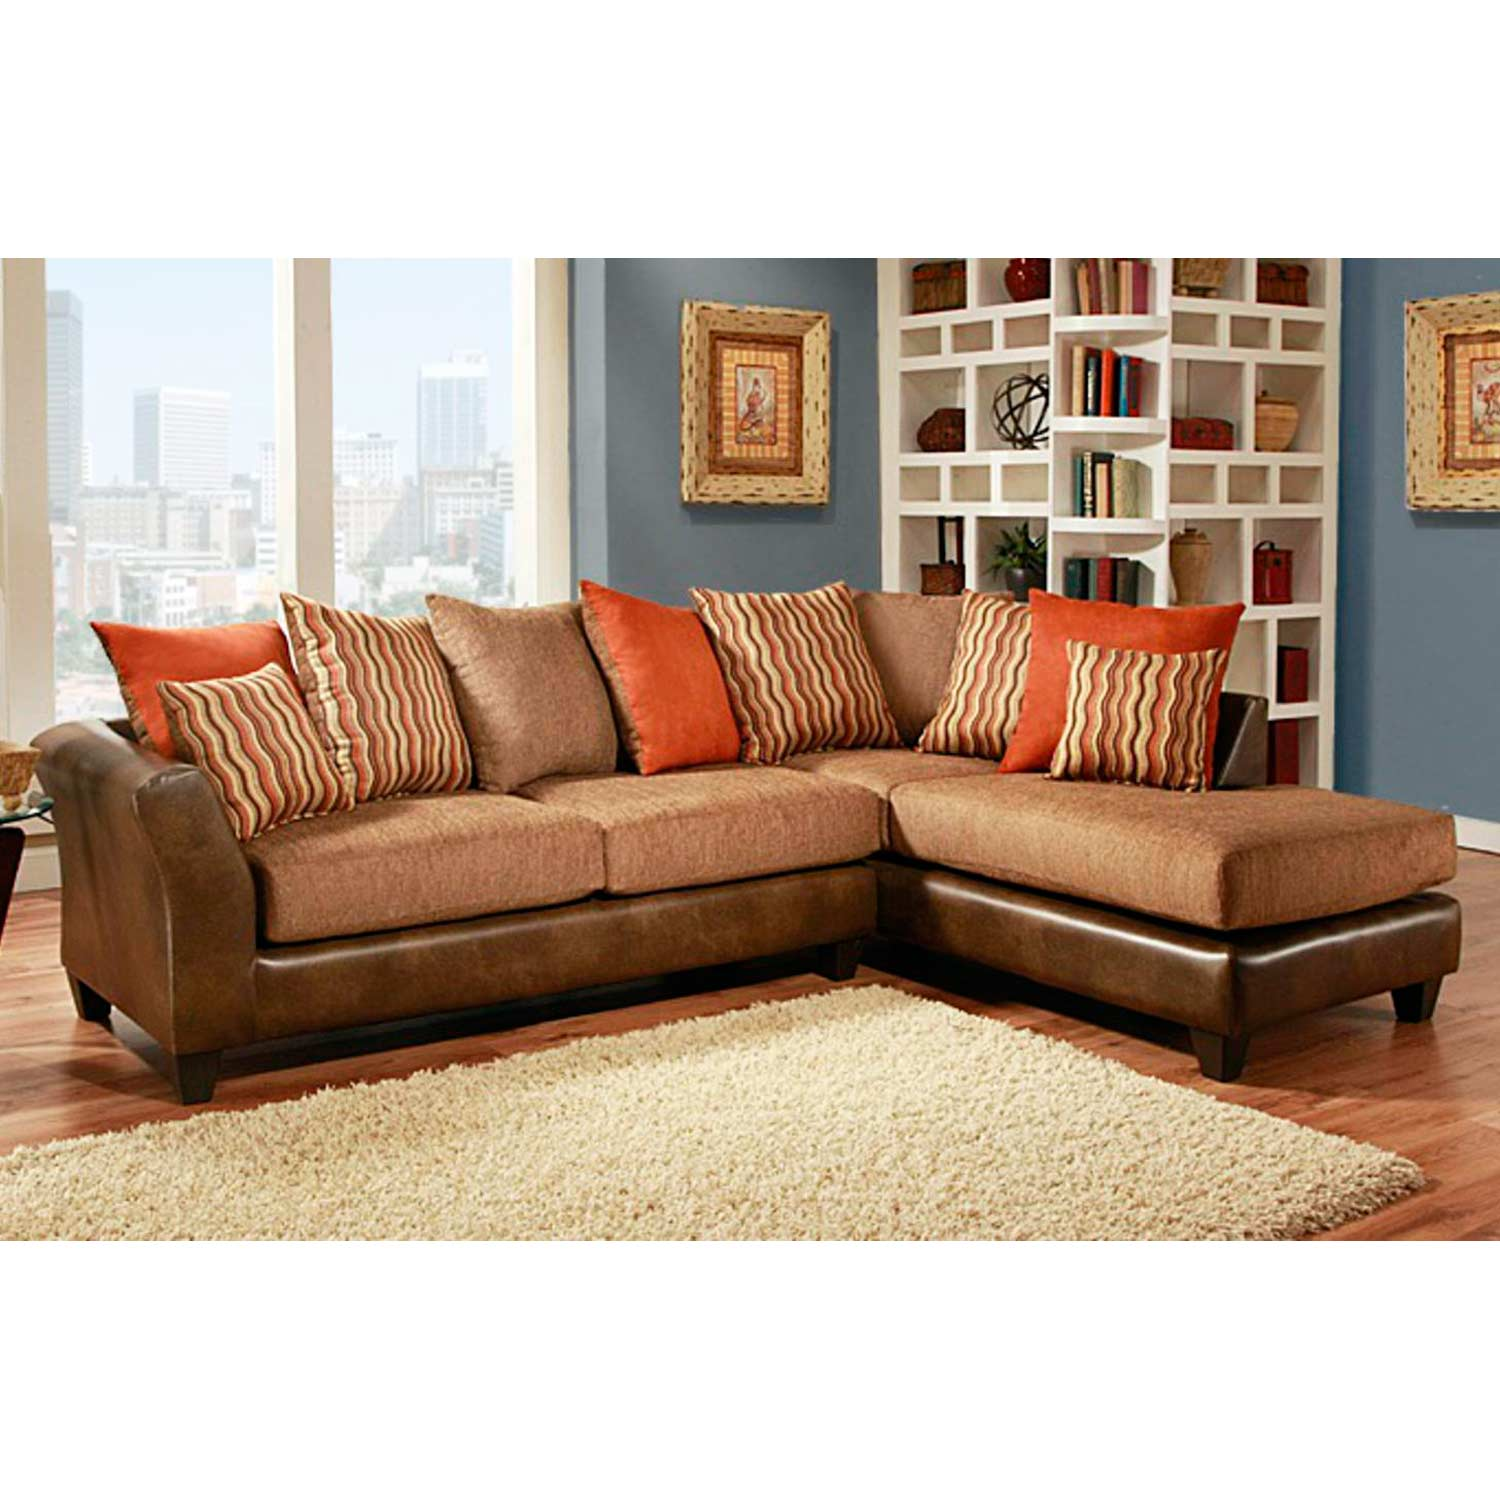 chenille sectional sofas with chaise ethan allen sofa bed iota and cushions mclarin